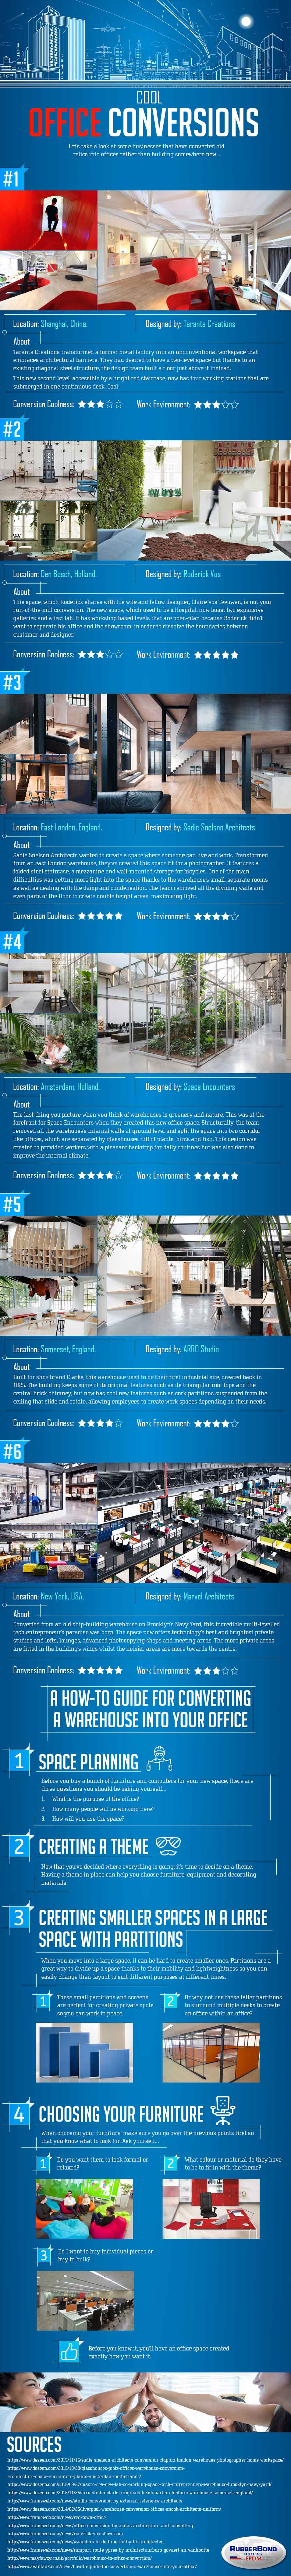 Cool Office Conversions